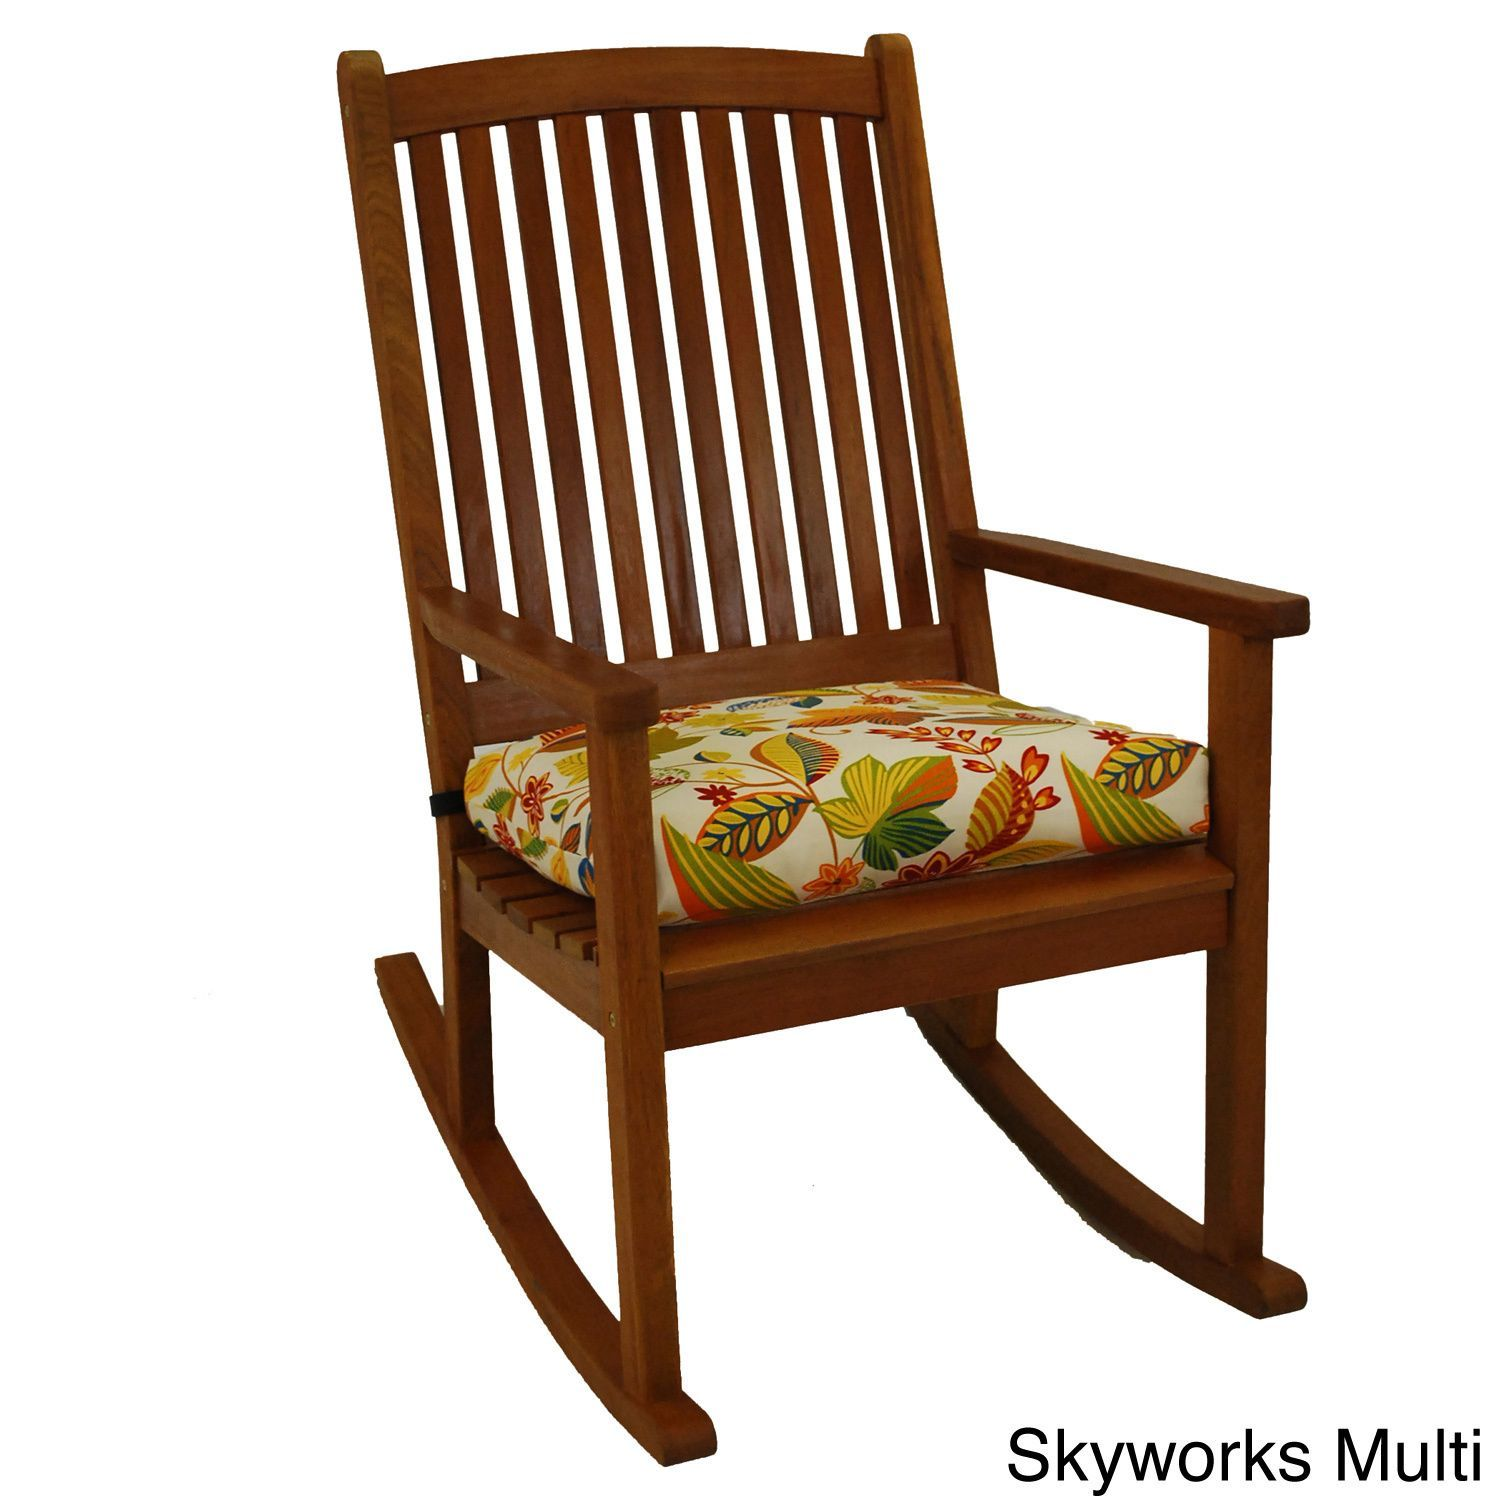 Blazing needles patterned allweather outdoor rocker chair cushion